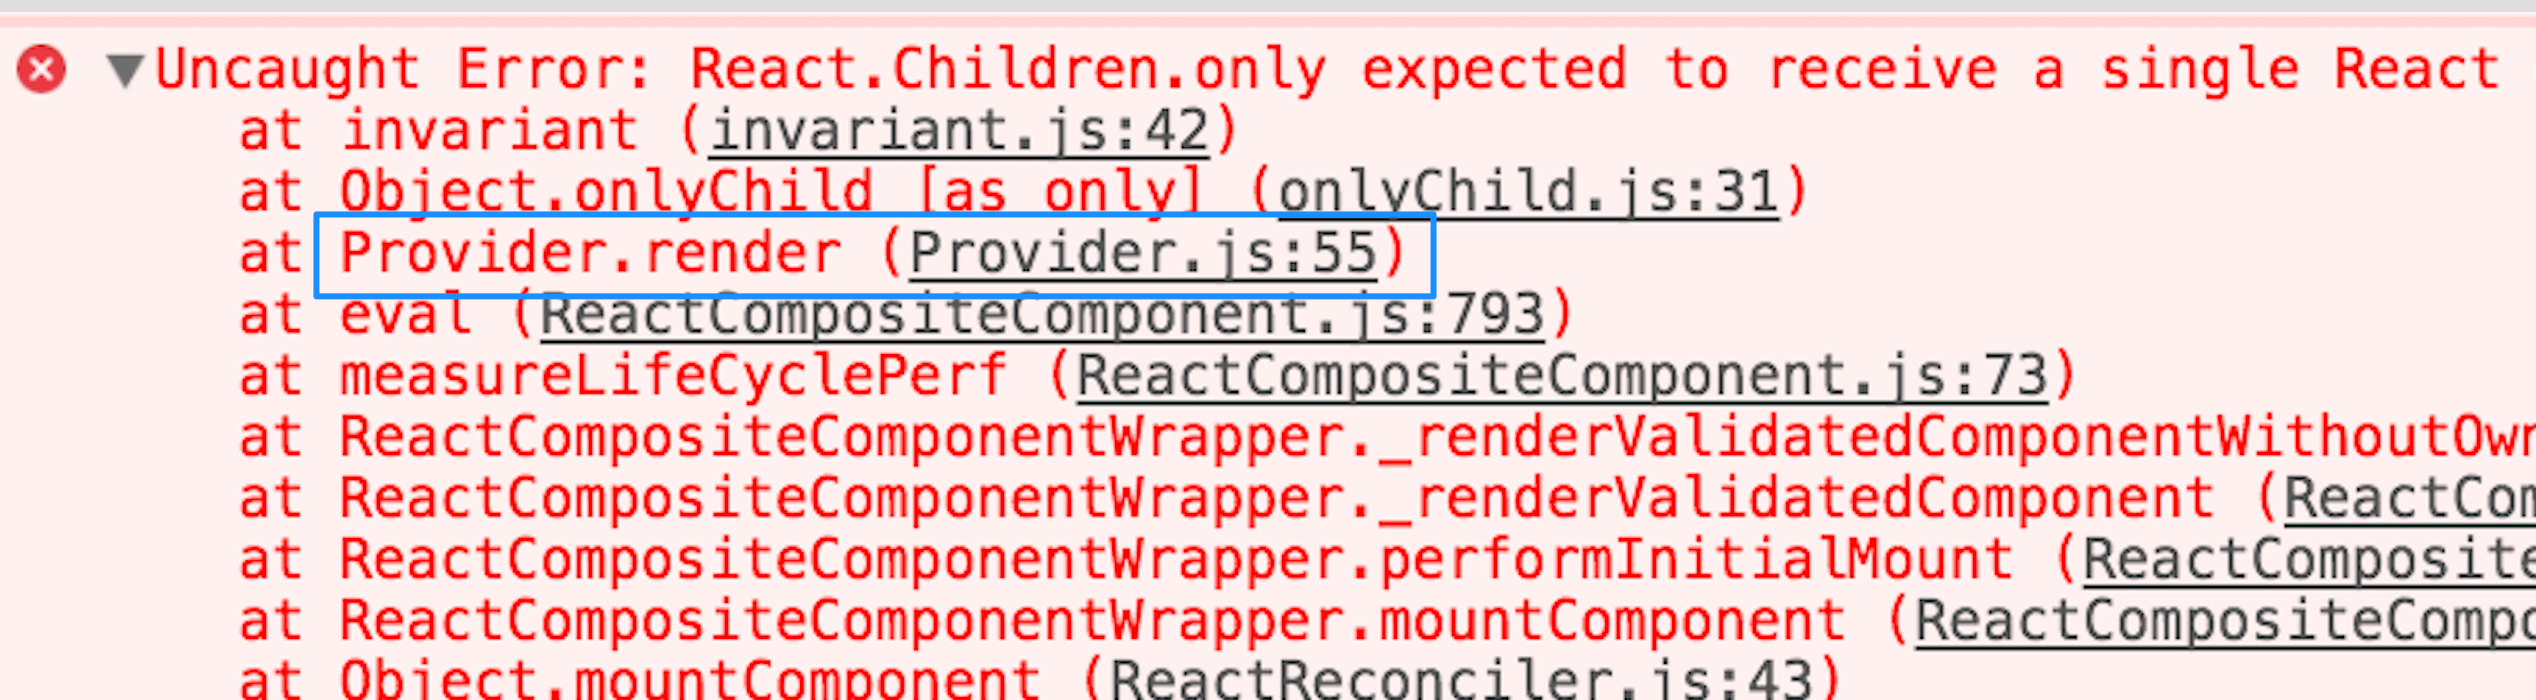 invariant.js:42 Uncaught Error: React.Children.only expected to receive a single React element child